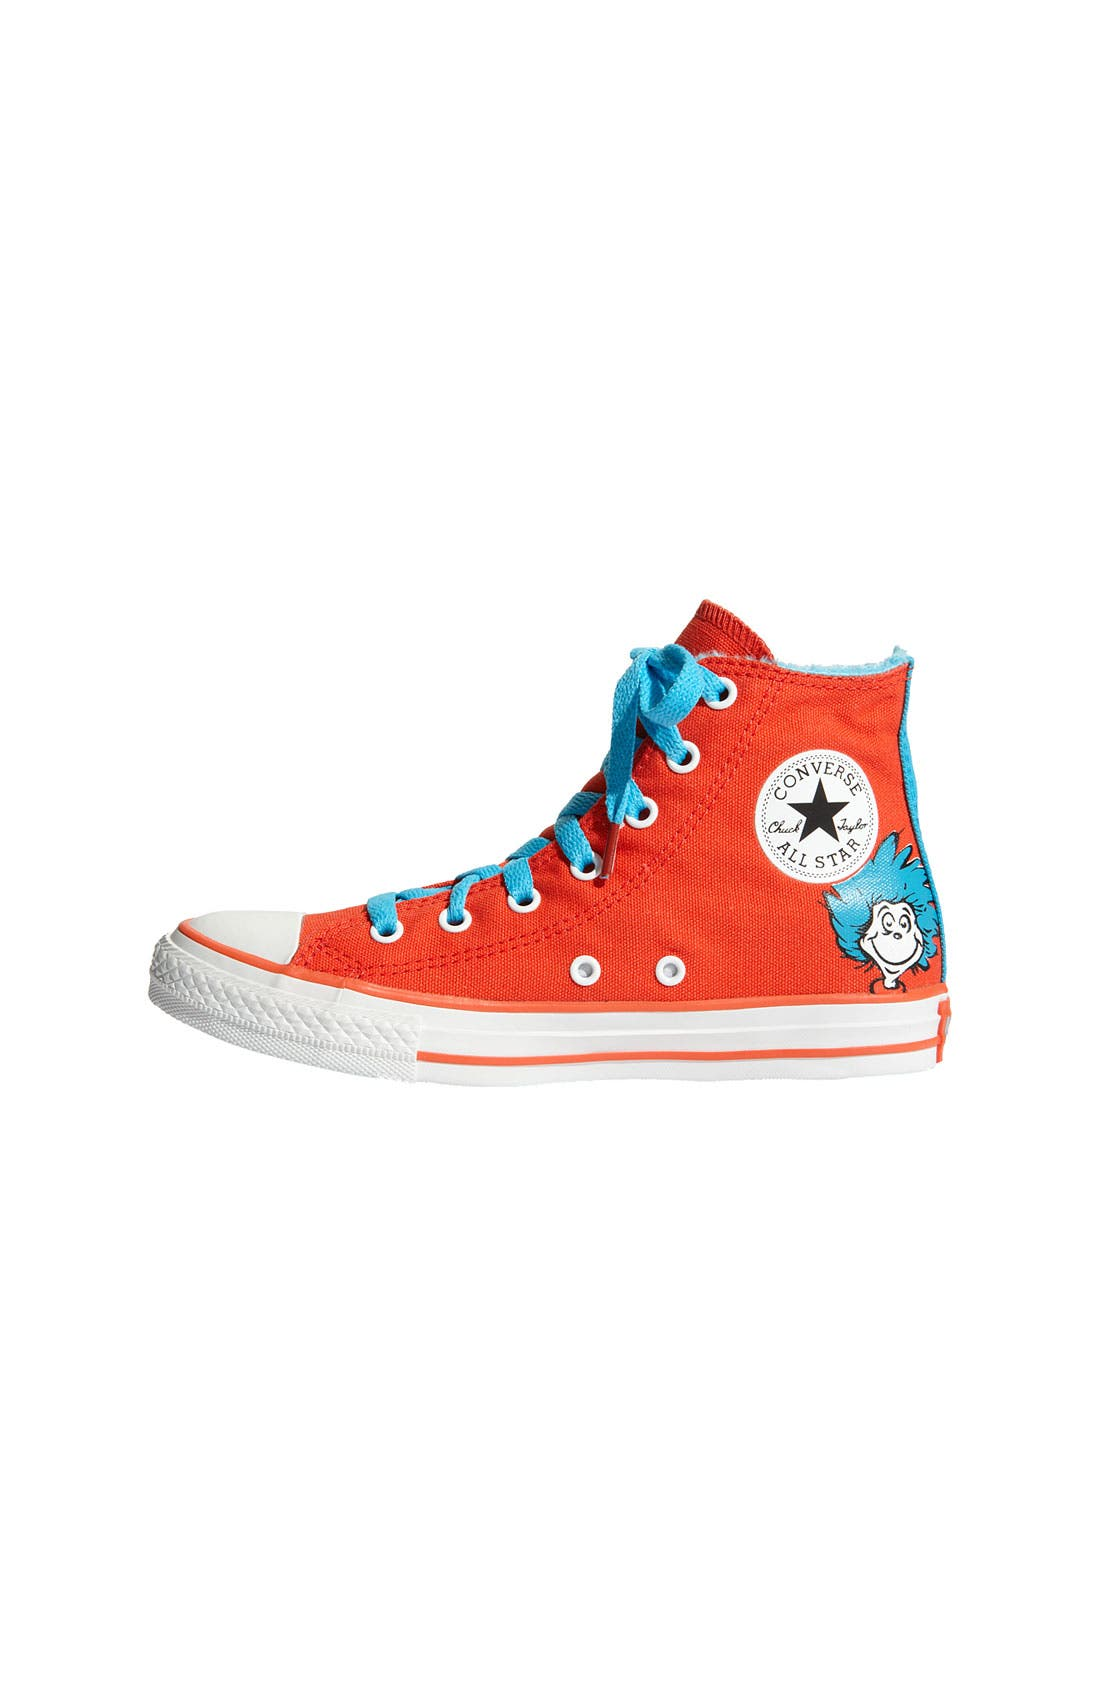 Chuck Taylor<sup>®</sup> 'Dr. Seuss - Thing 1 & Thing 2' Sneaker,                             Alternate thumbnail 2, color,                             618